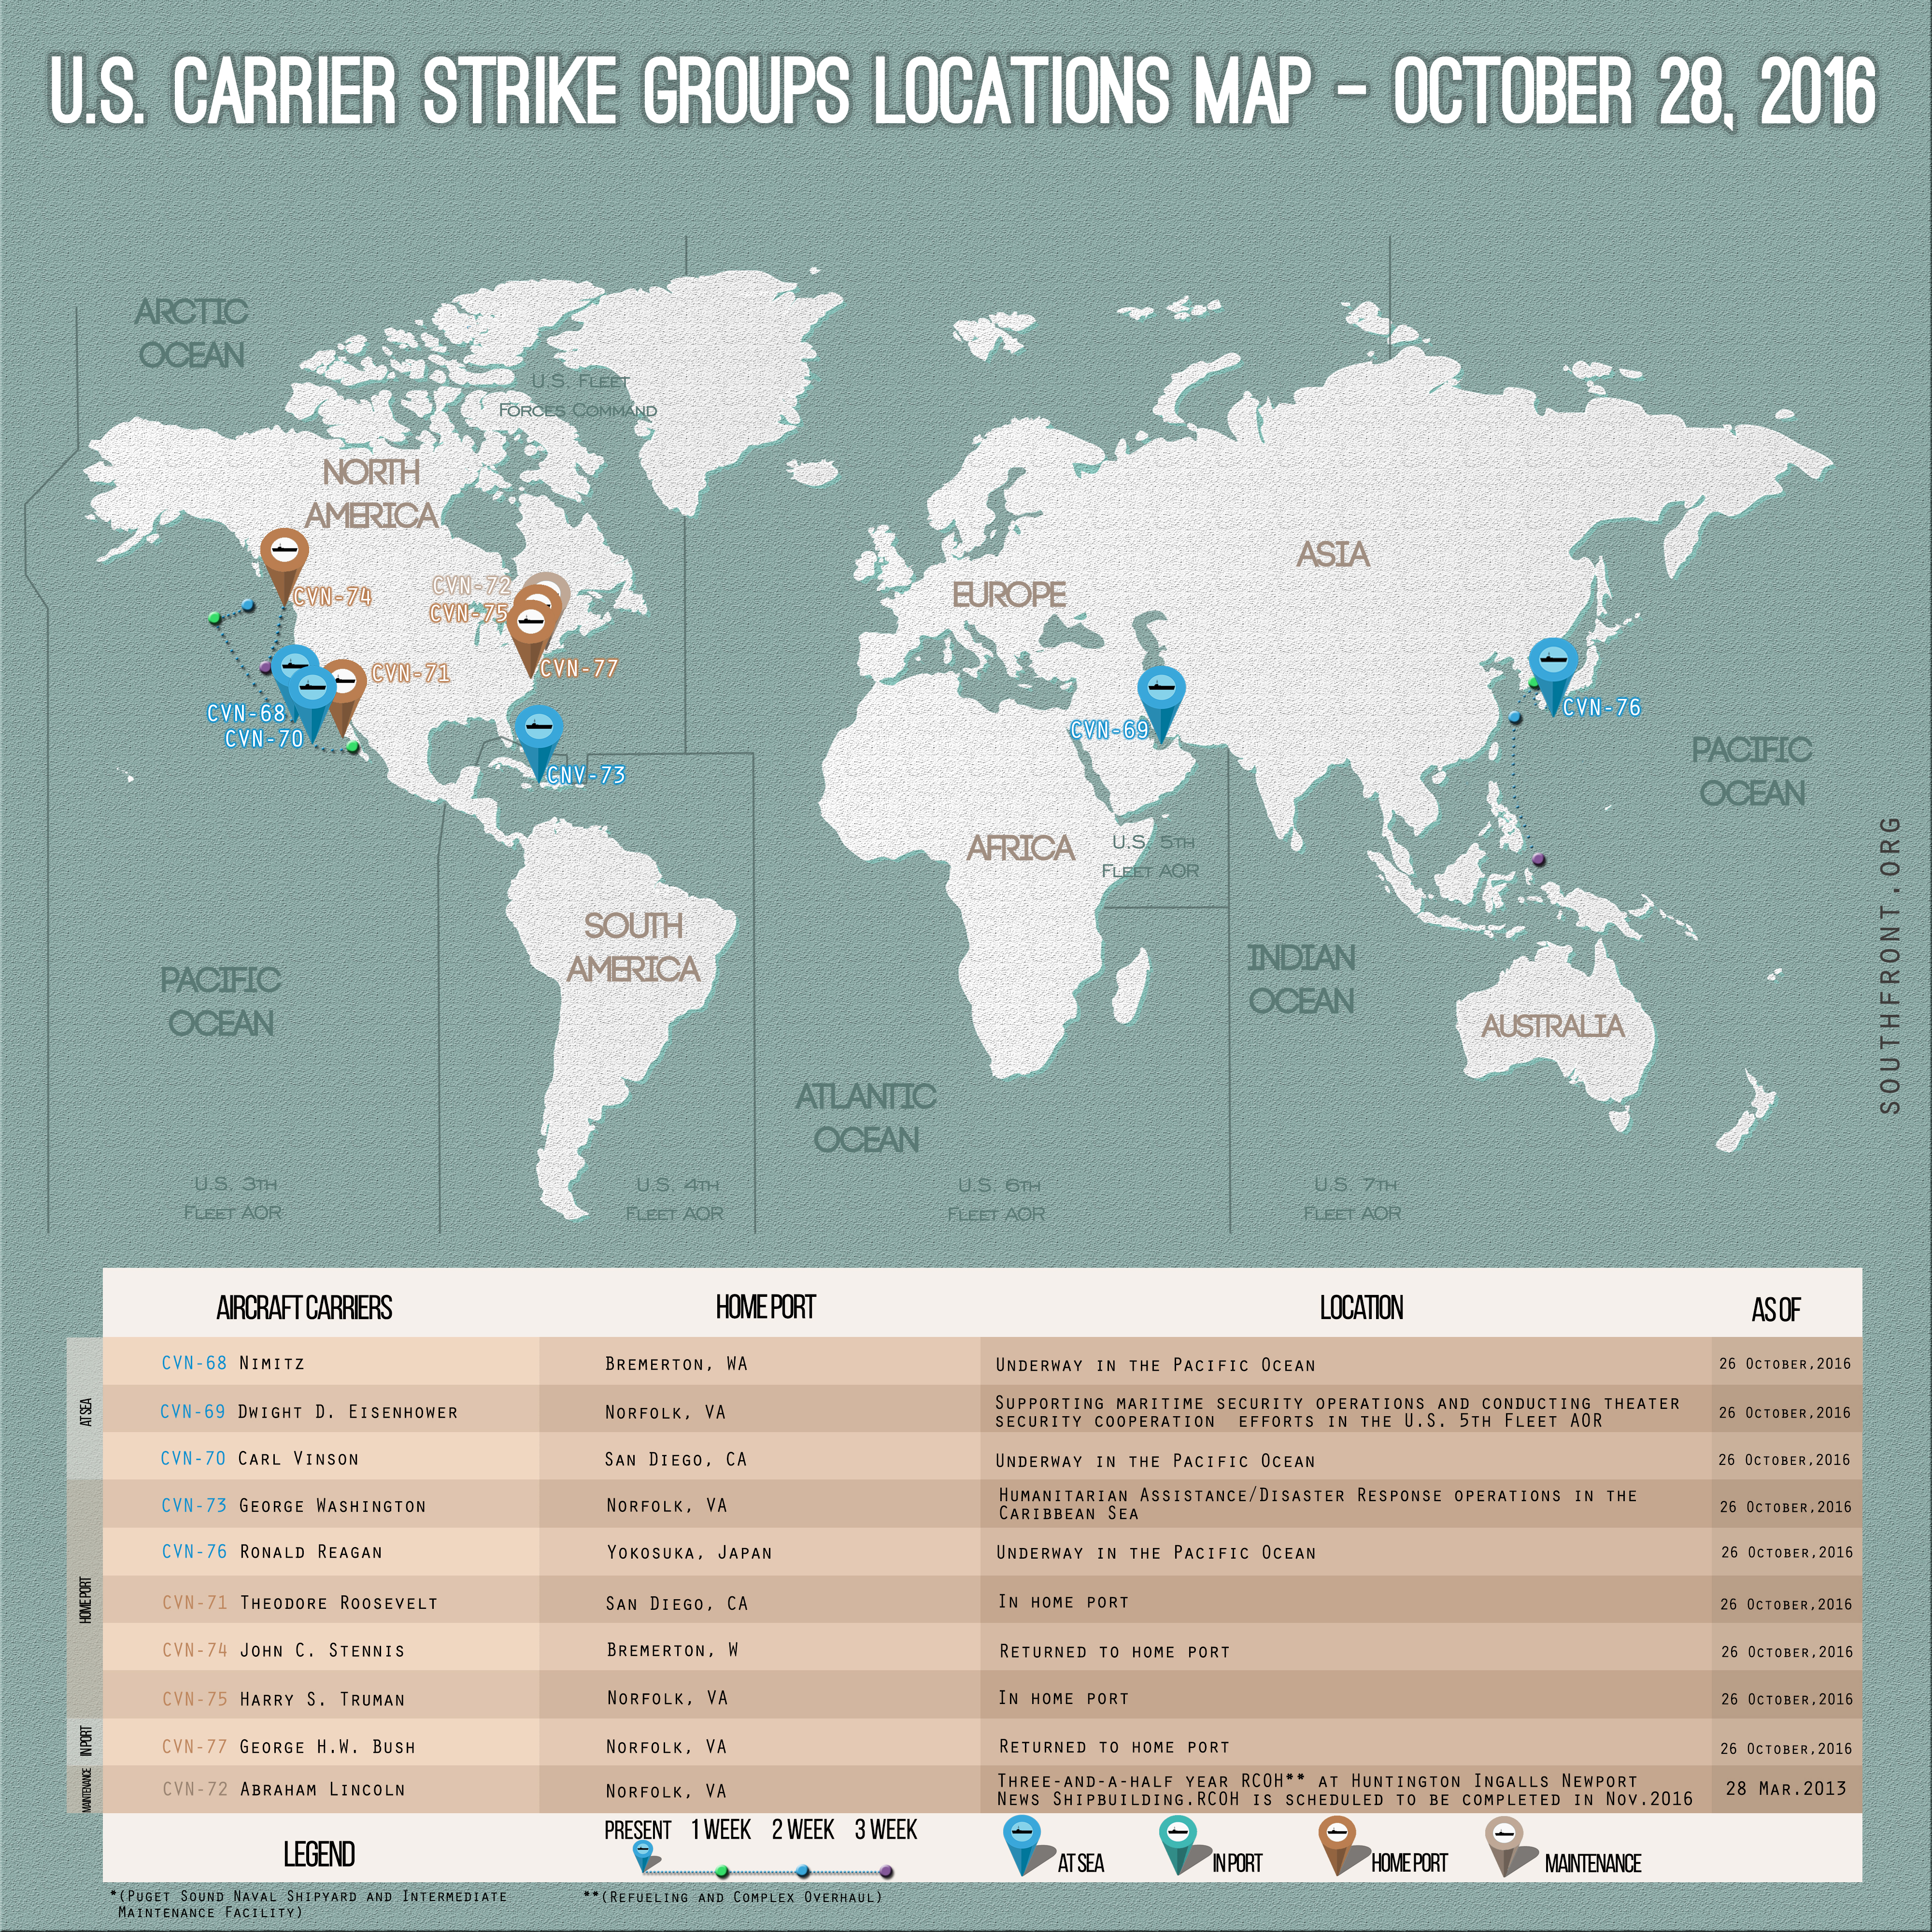 US Carrier Strike Groups Locations Map – October 28, 2016